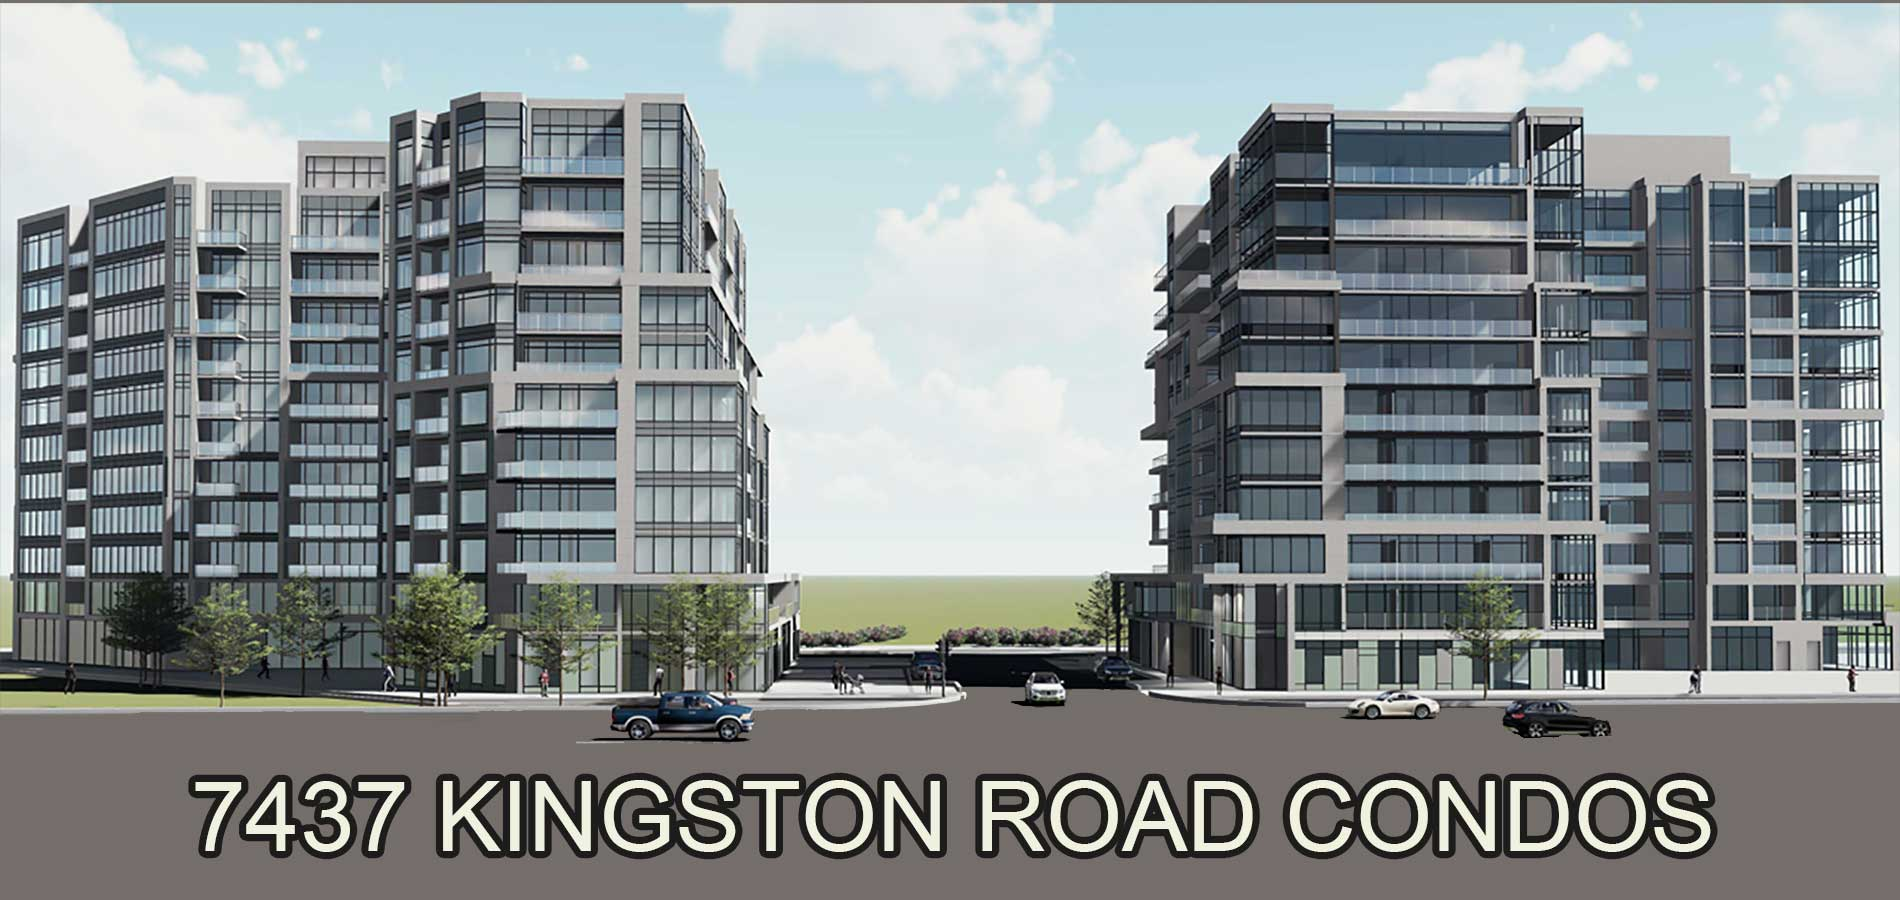 7437 Kingston Road Condos